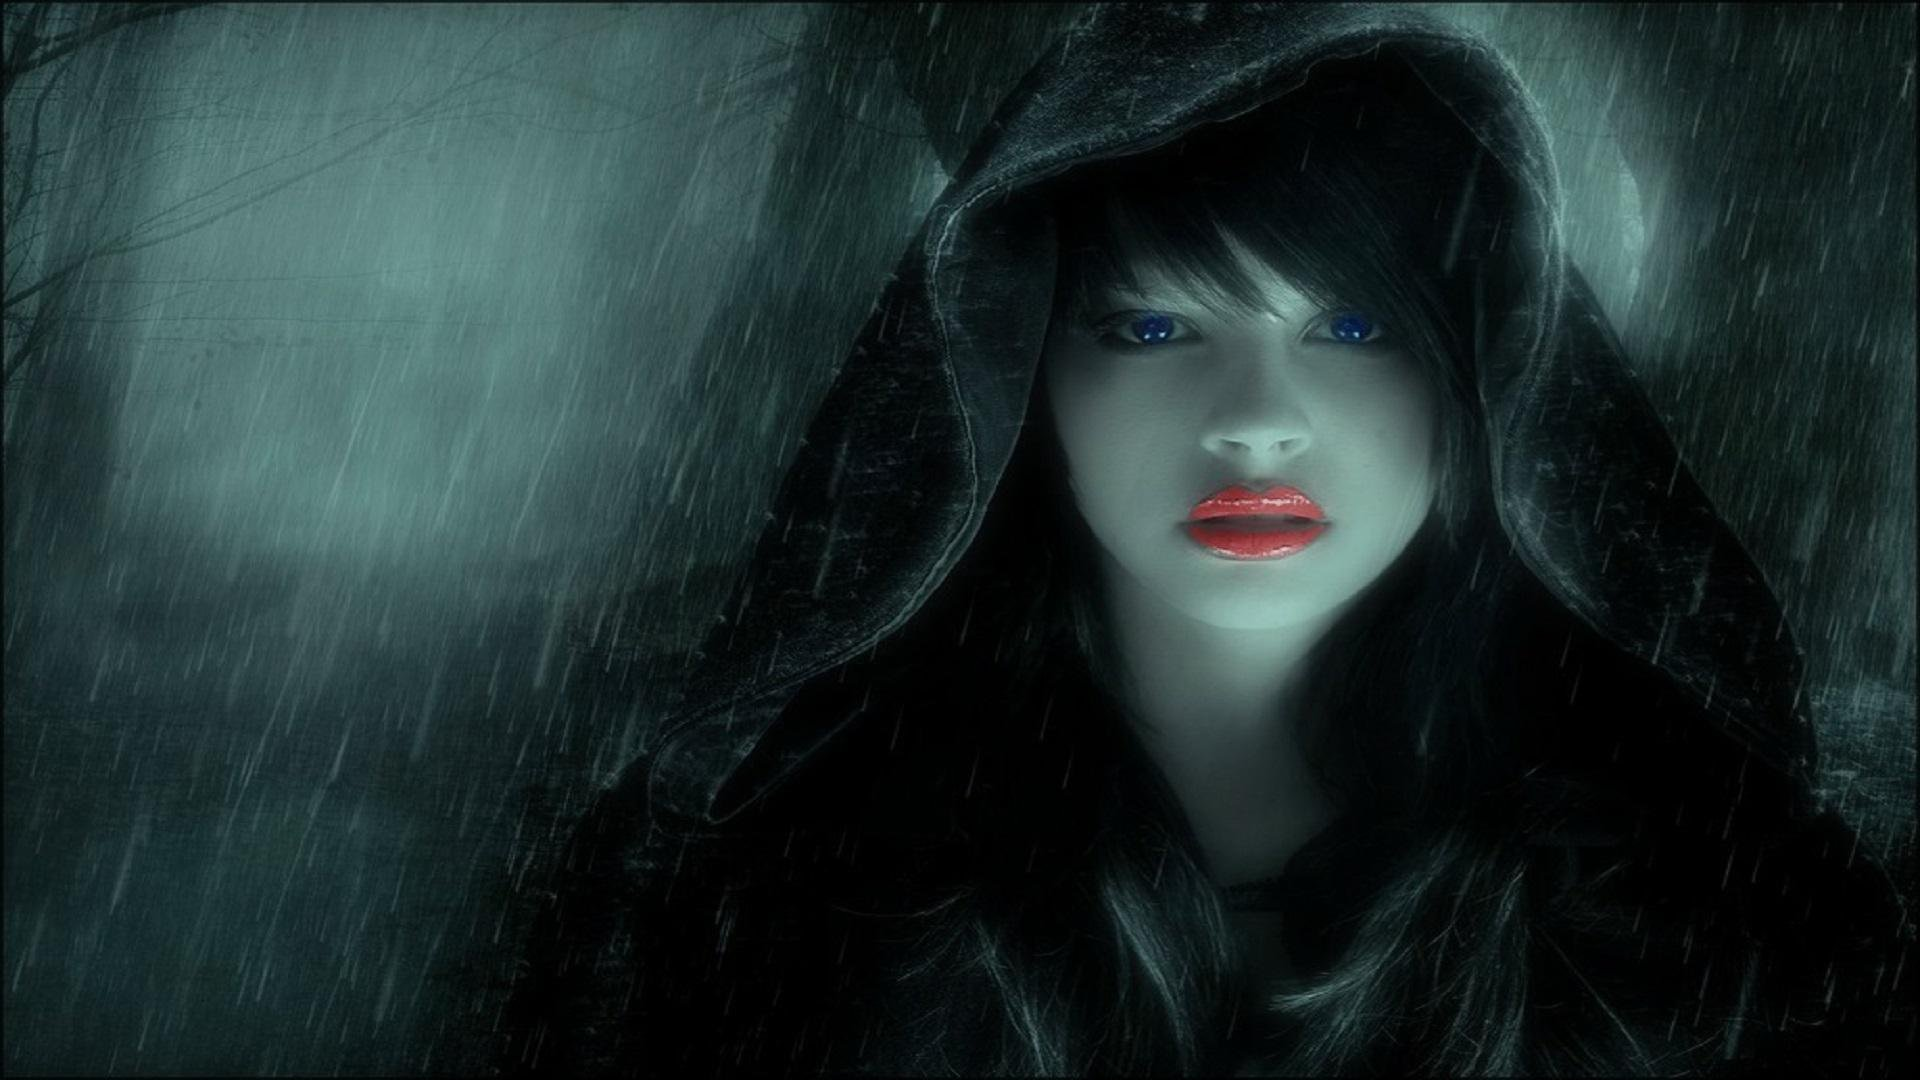 Dark Fantasy Girl Hd Wallpaper Background Image 1920x1080 Id 714428 Wallpaper Abyss